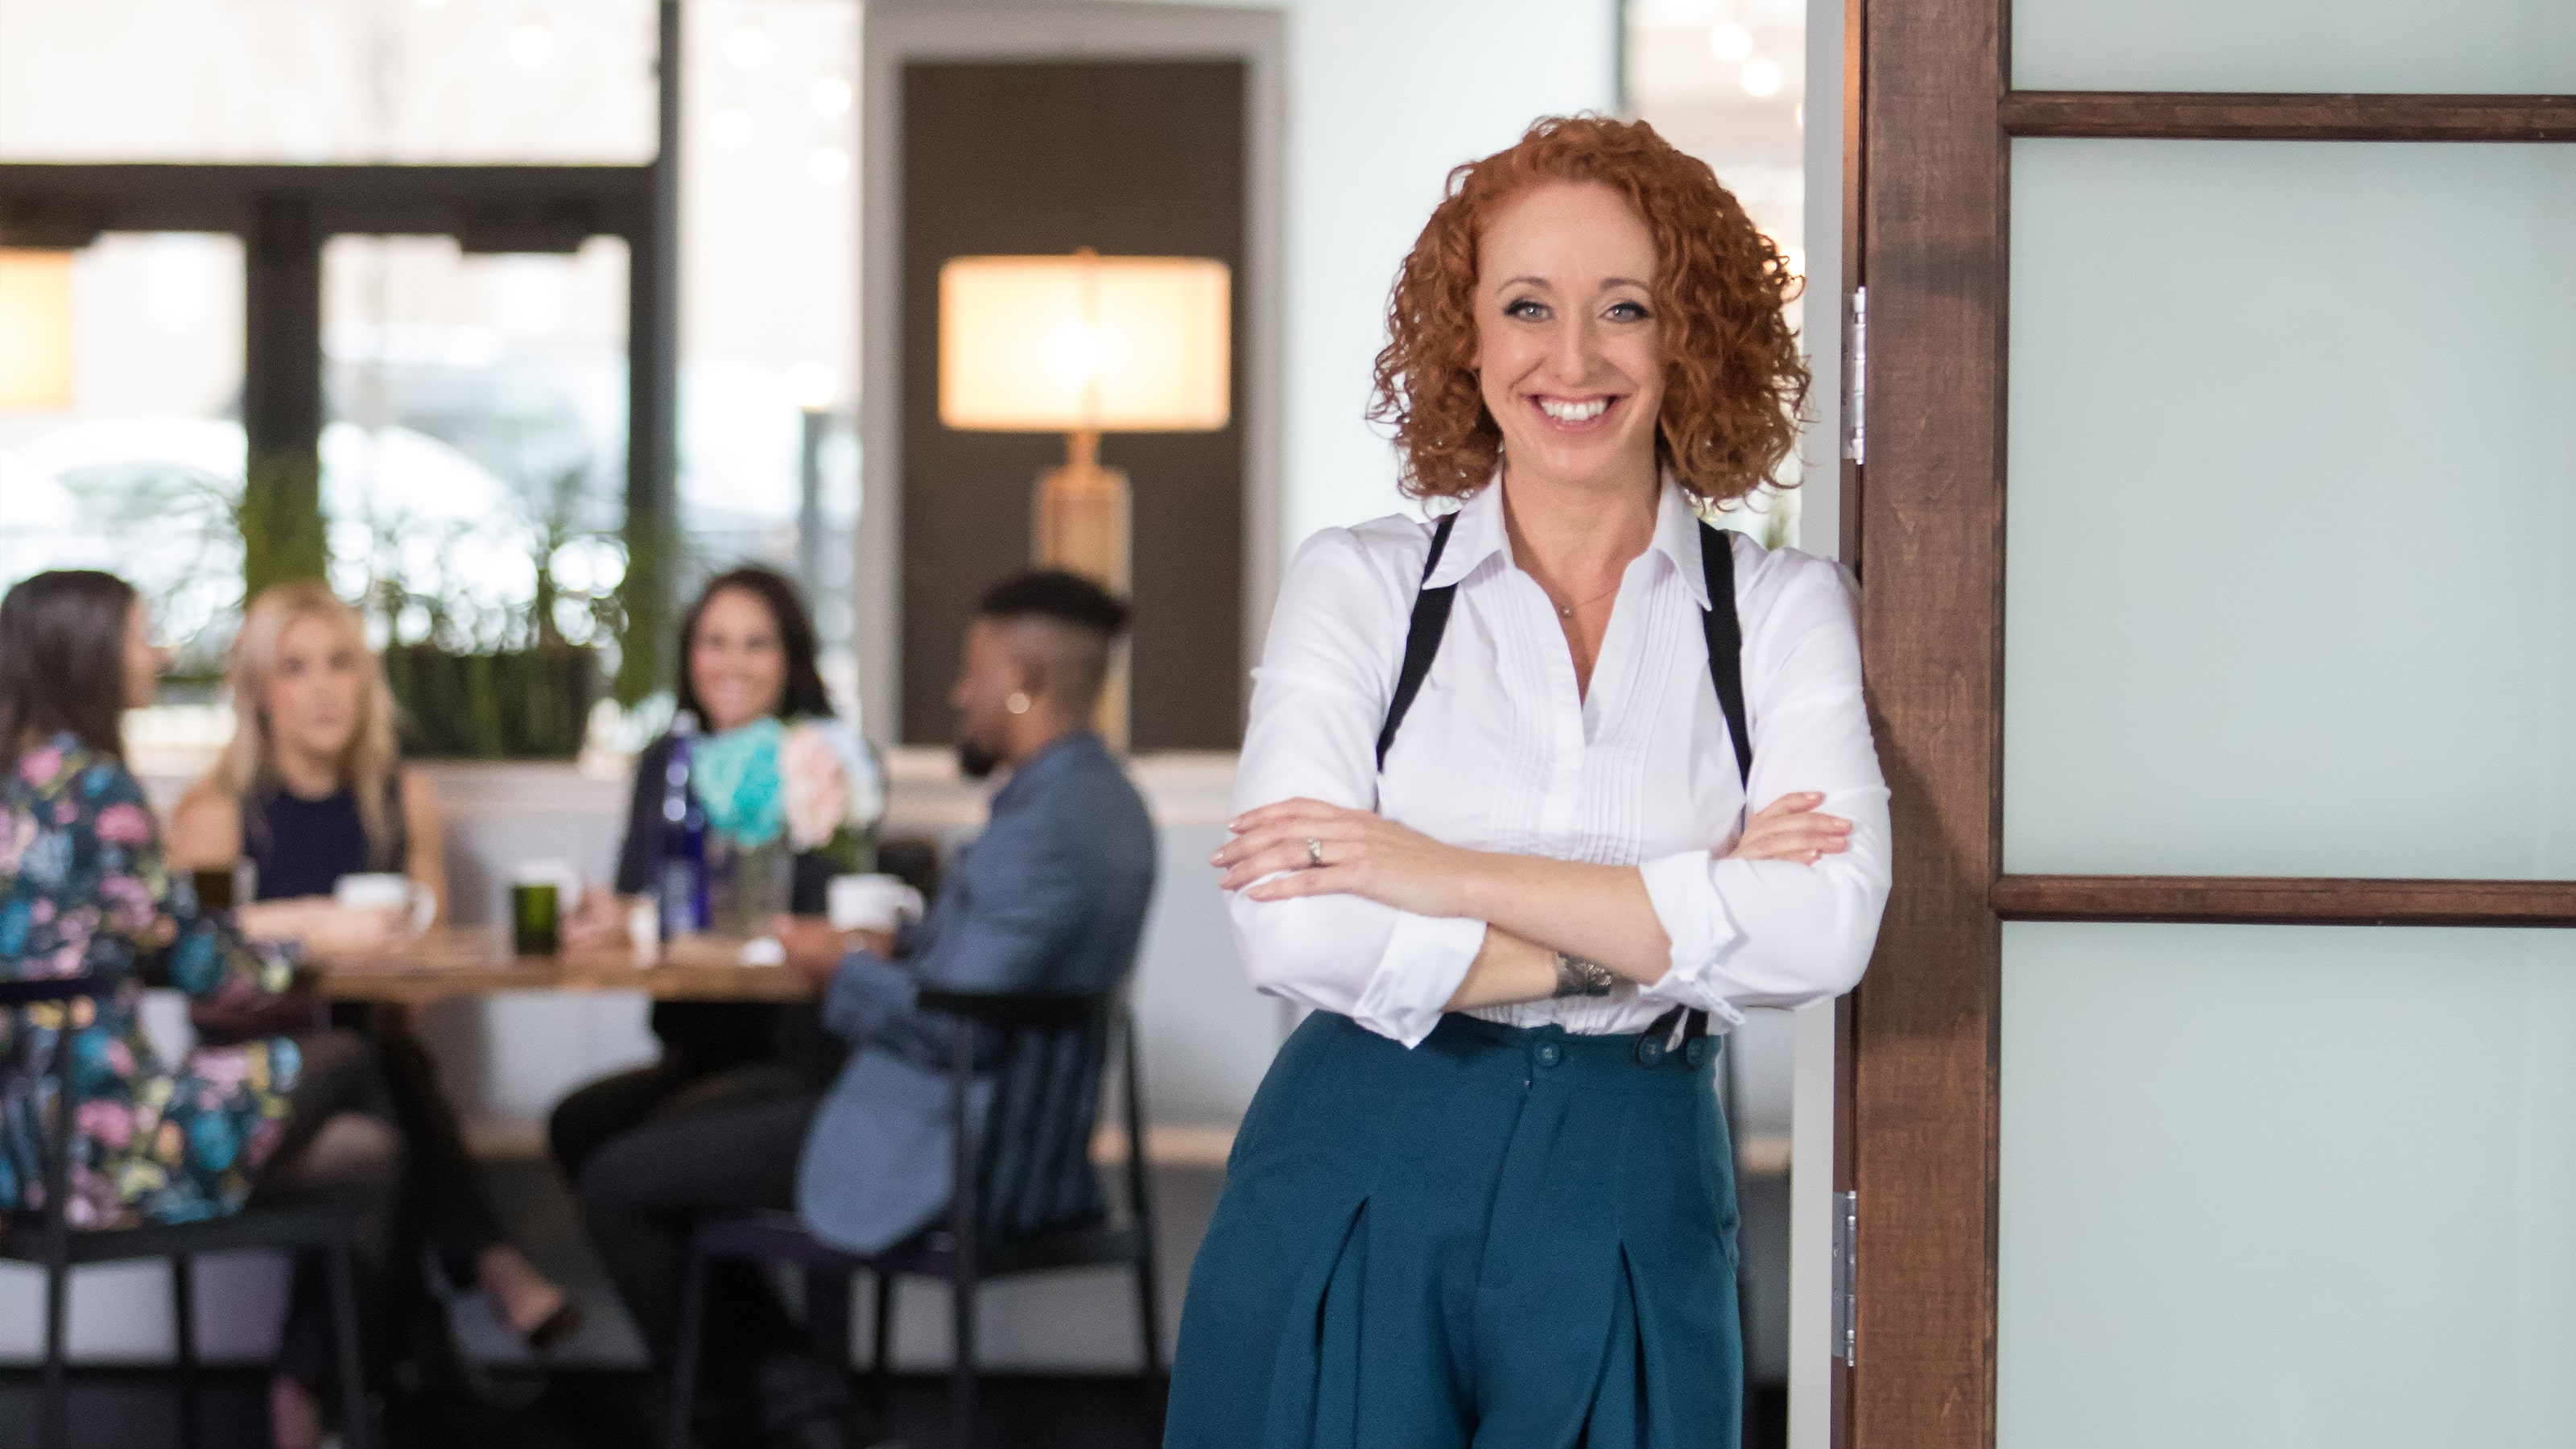 A red haired woman looks confidently at the camera